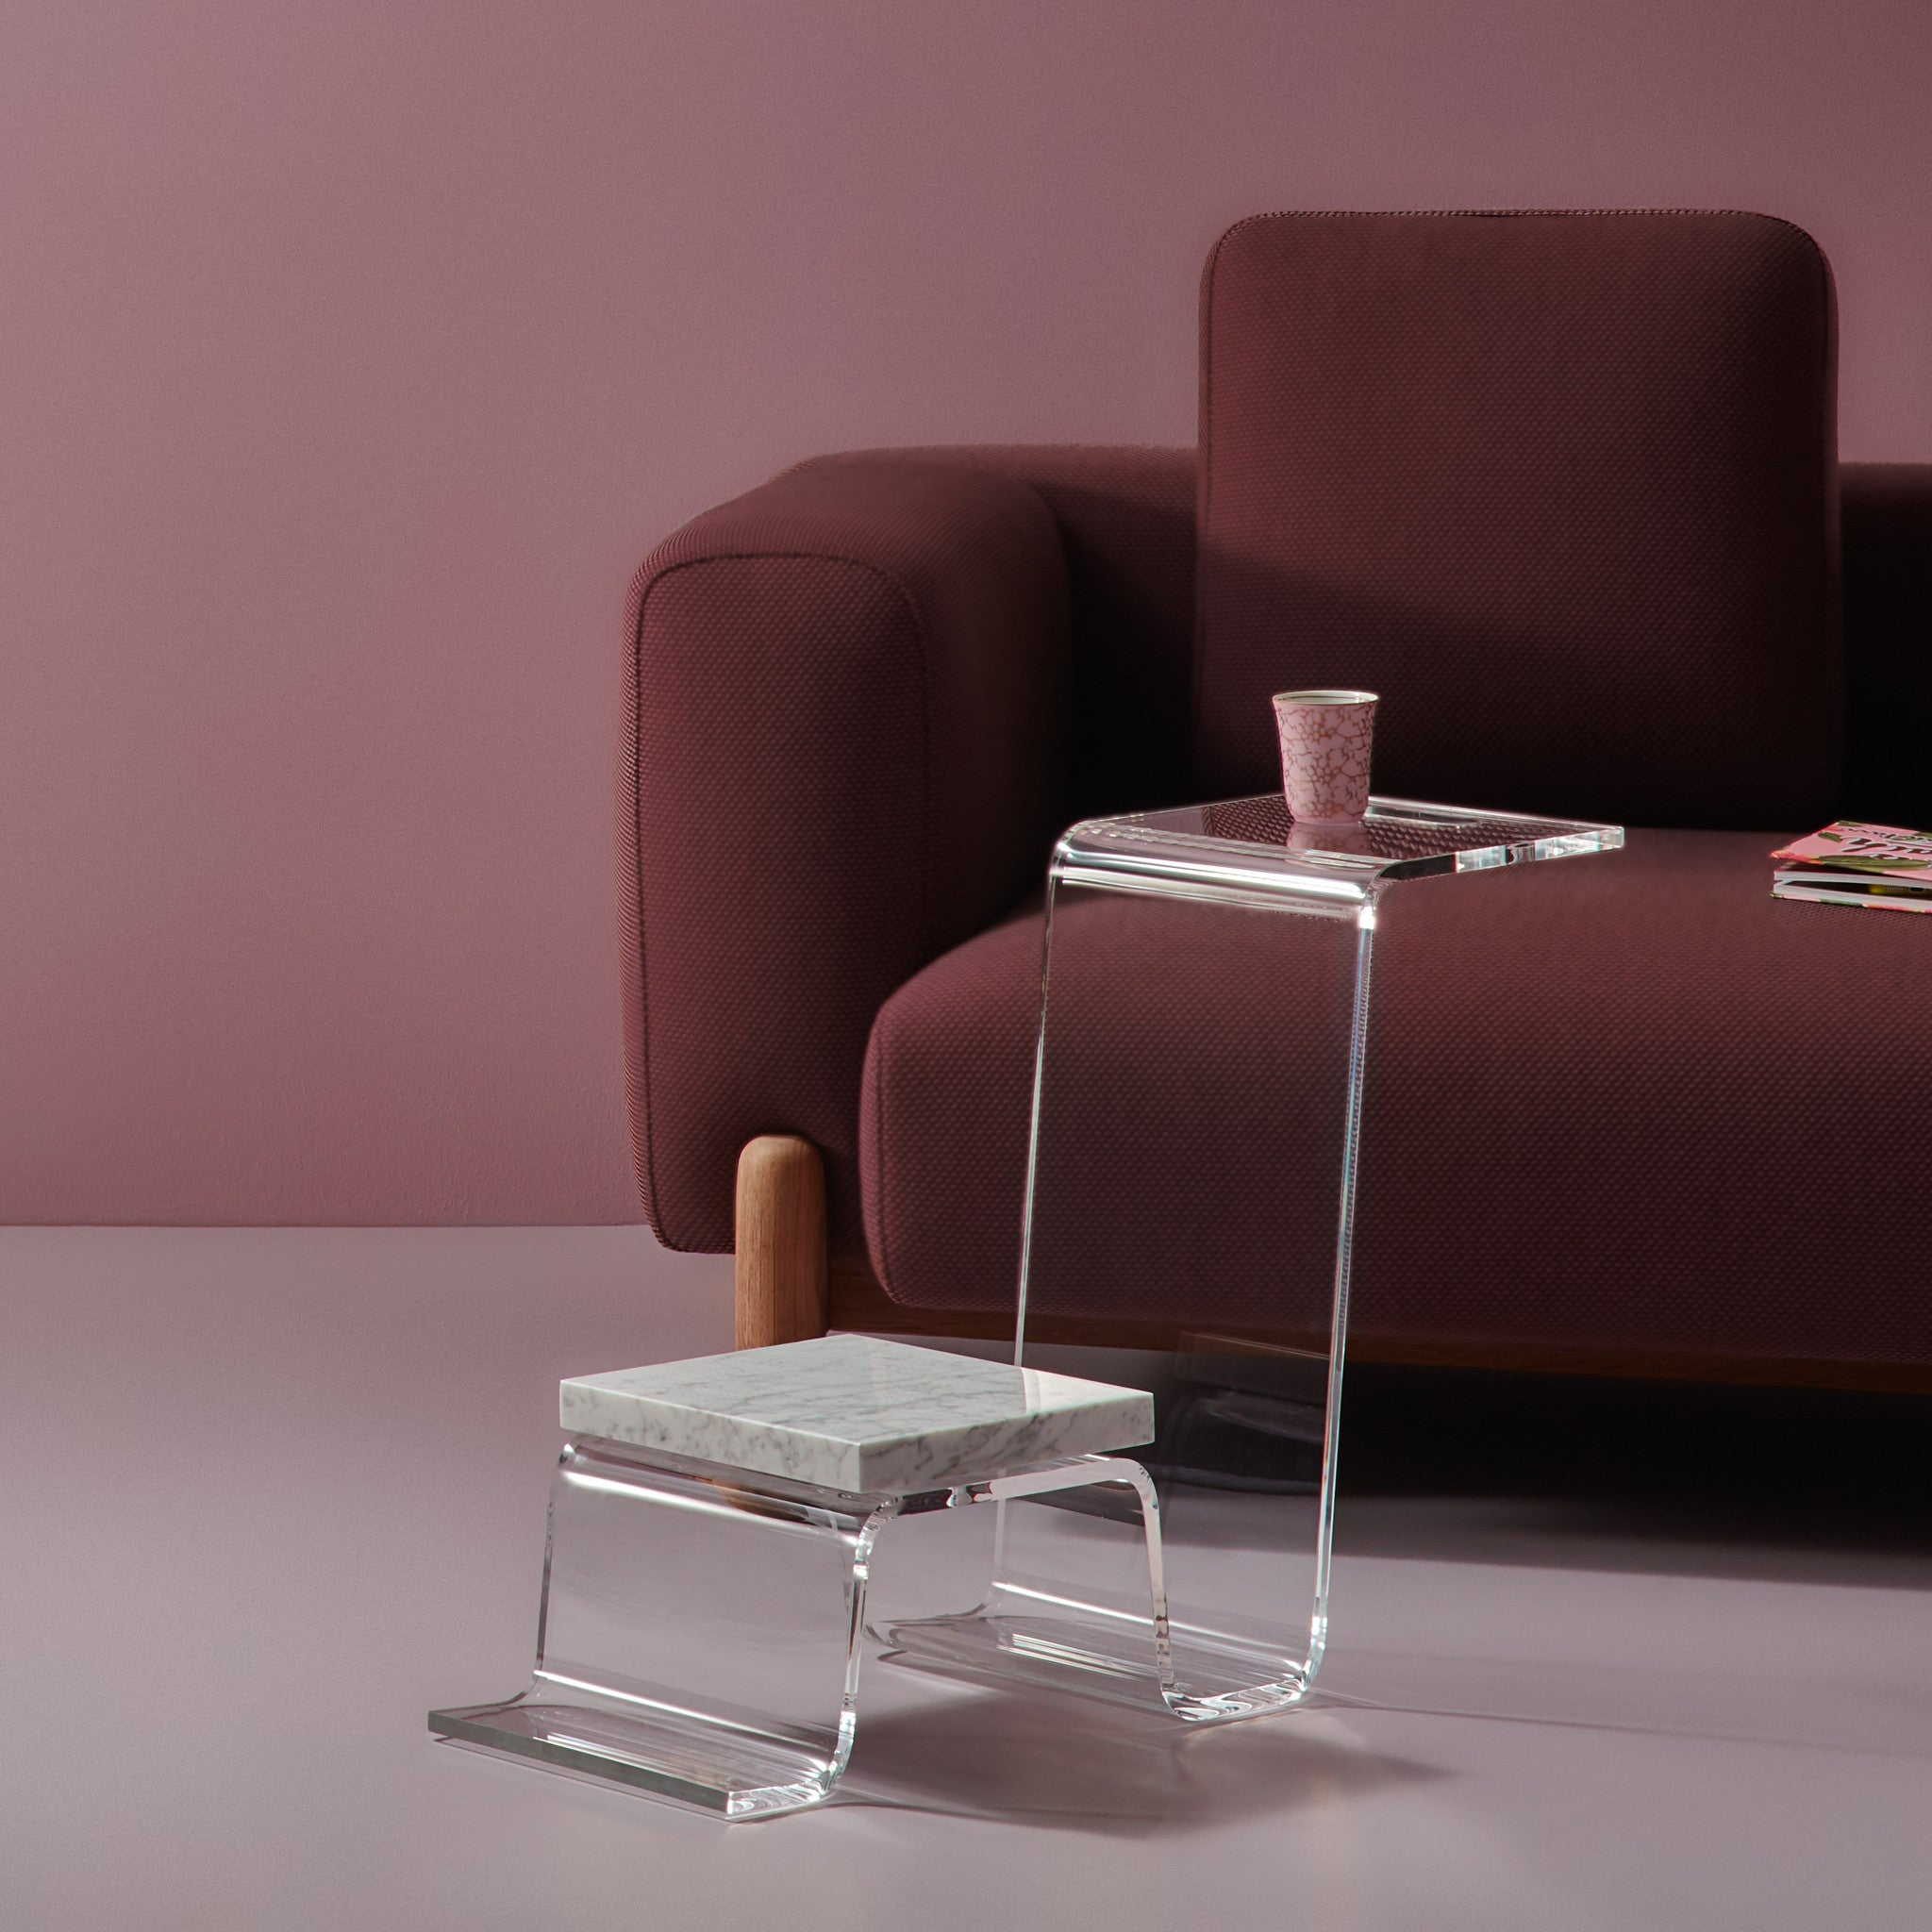 THE LINE Perspex Coffee Table